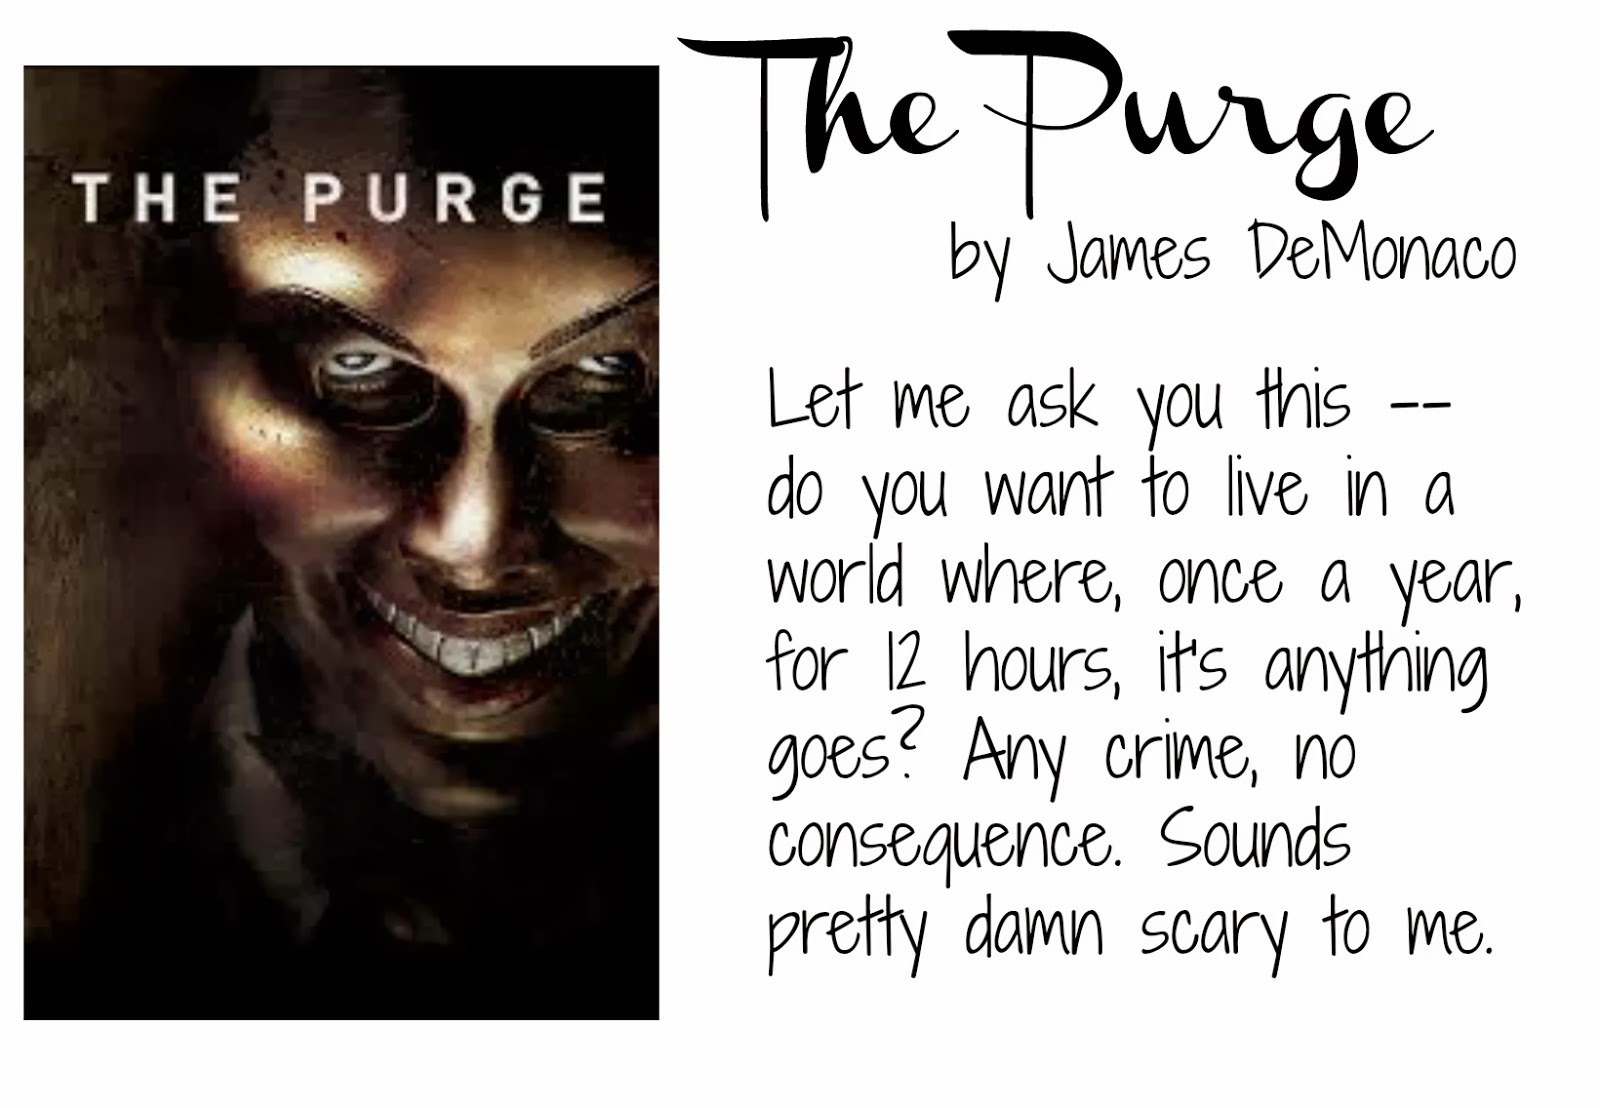 Quotes From The Purge Quotes From The Purge Unique Quotes From The Purge Alexdapiata